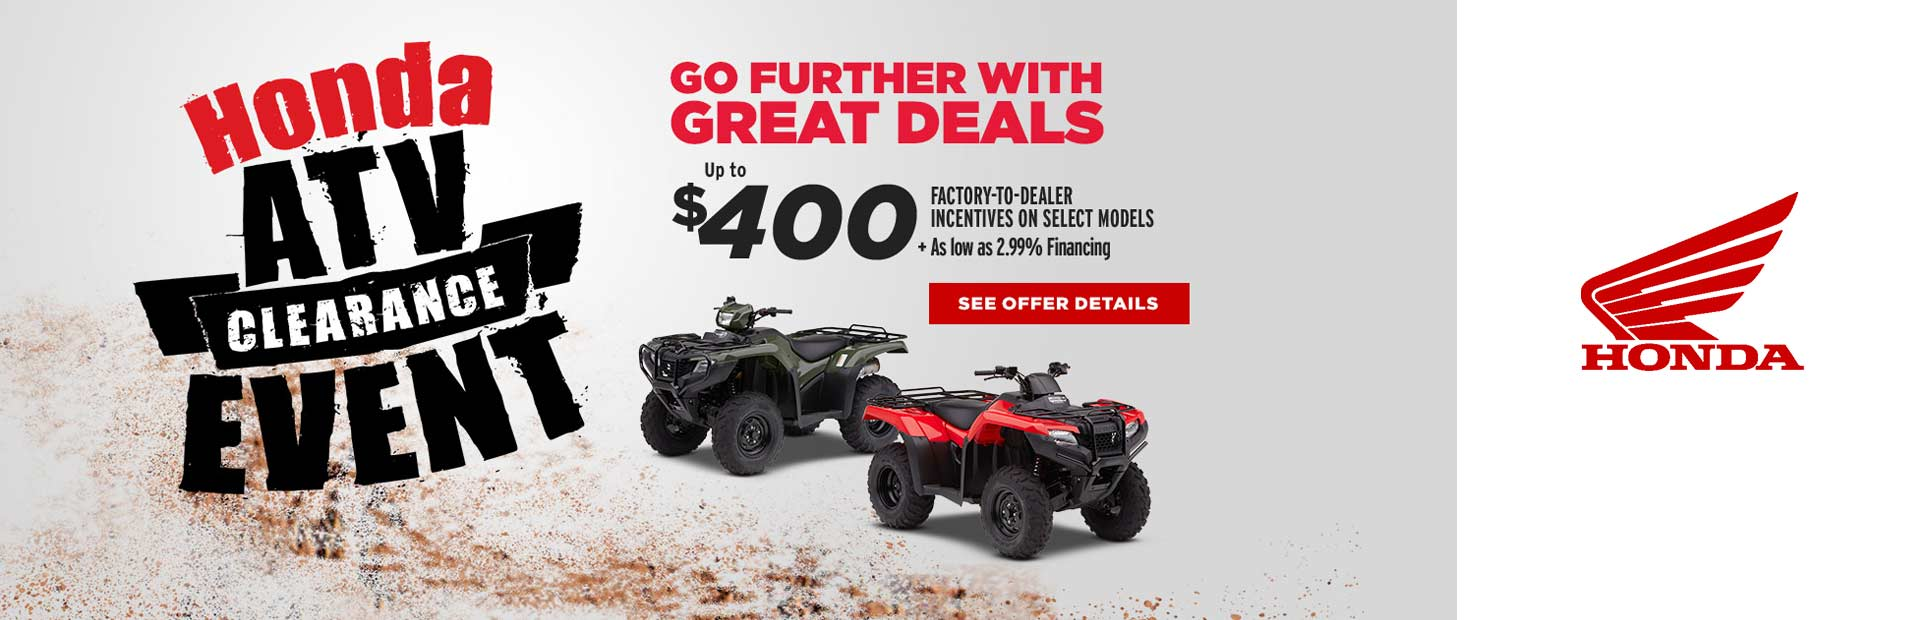 Honda: Honda ATV Clearance Event - 2.99% Fixed APR